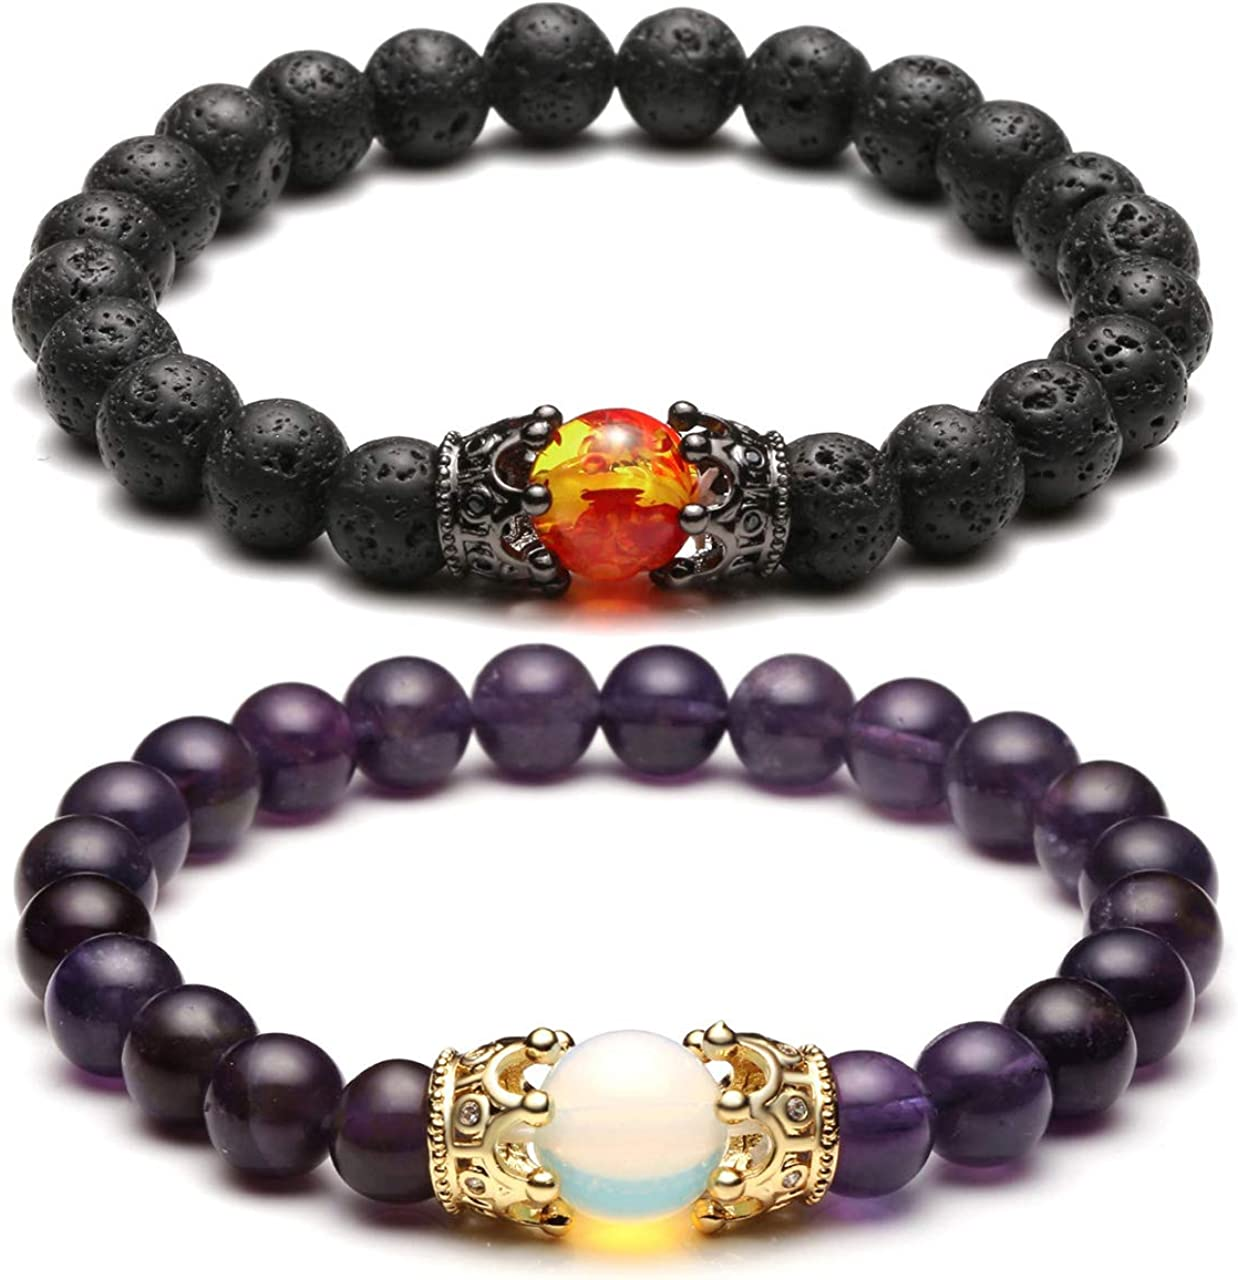 UEUC King/&Queen Crown Distance Couple Bracelets His and Her Friendship 8mm Beads Bracelet